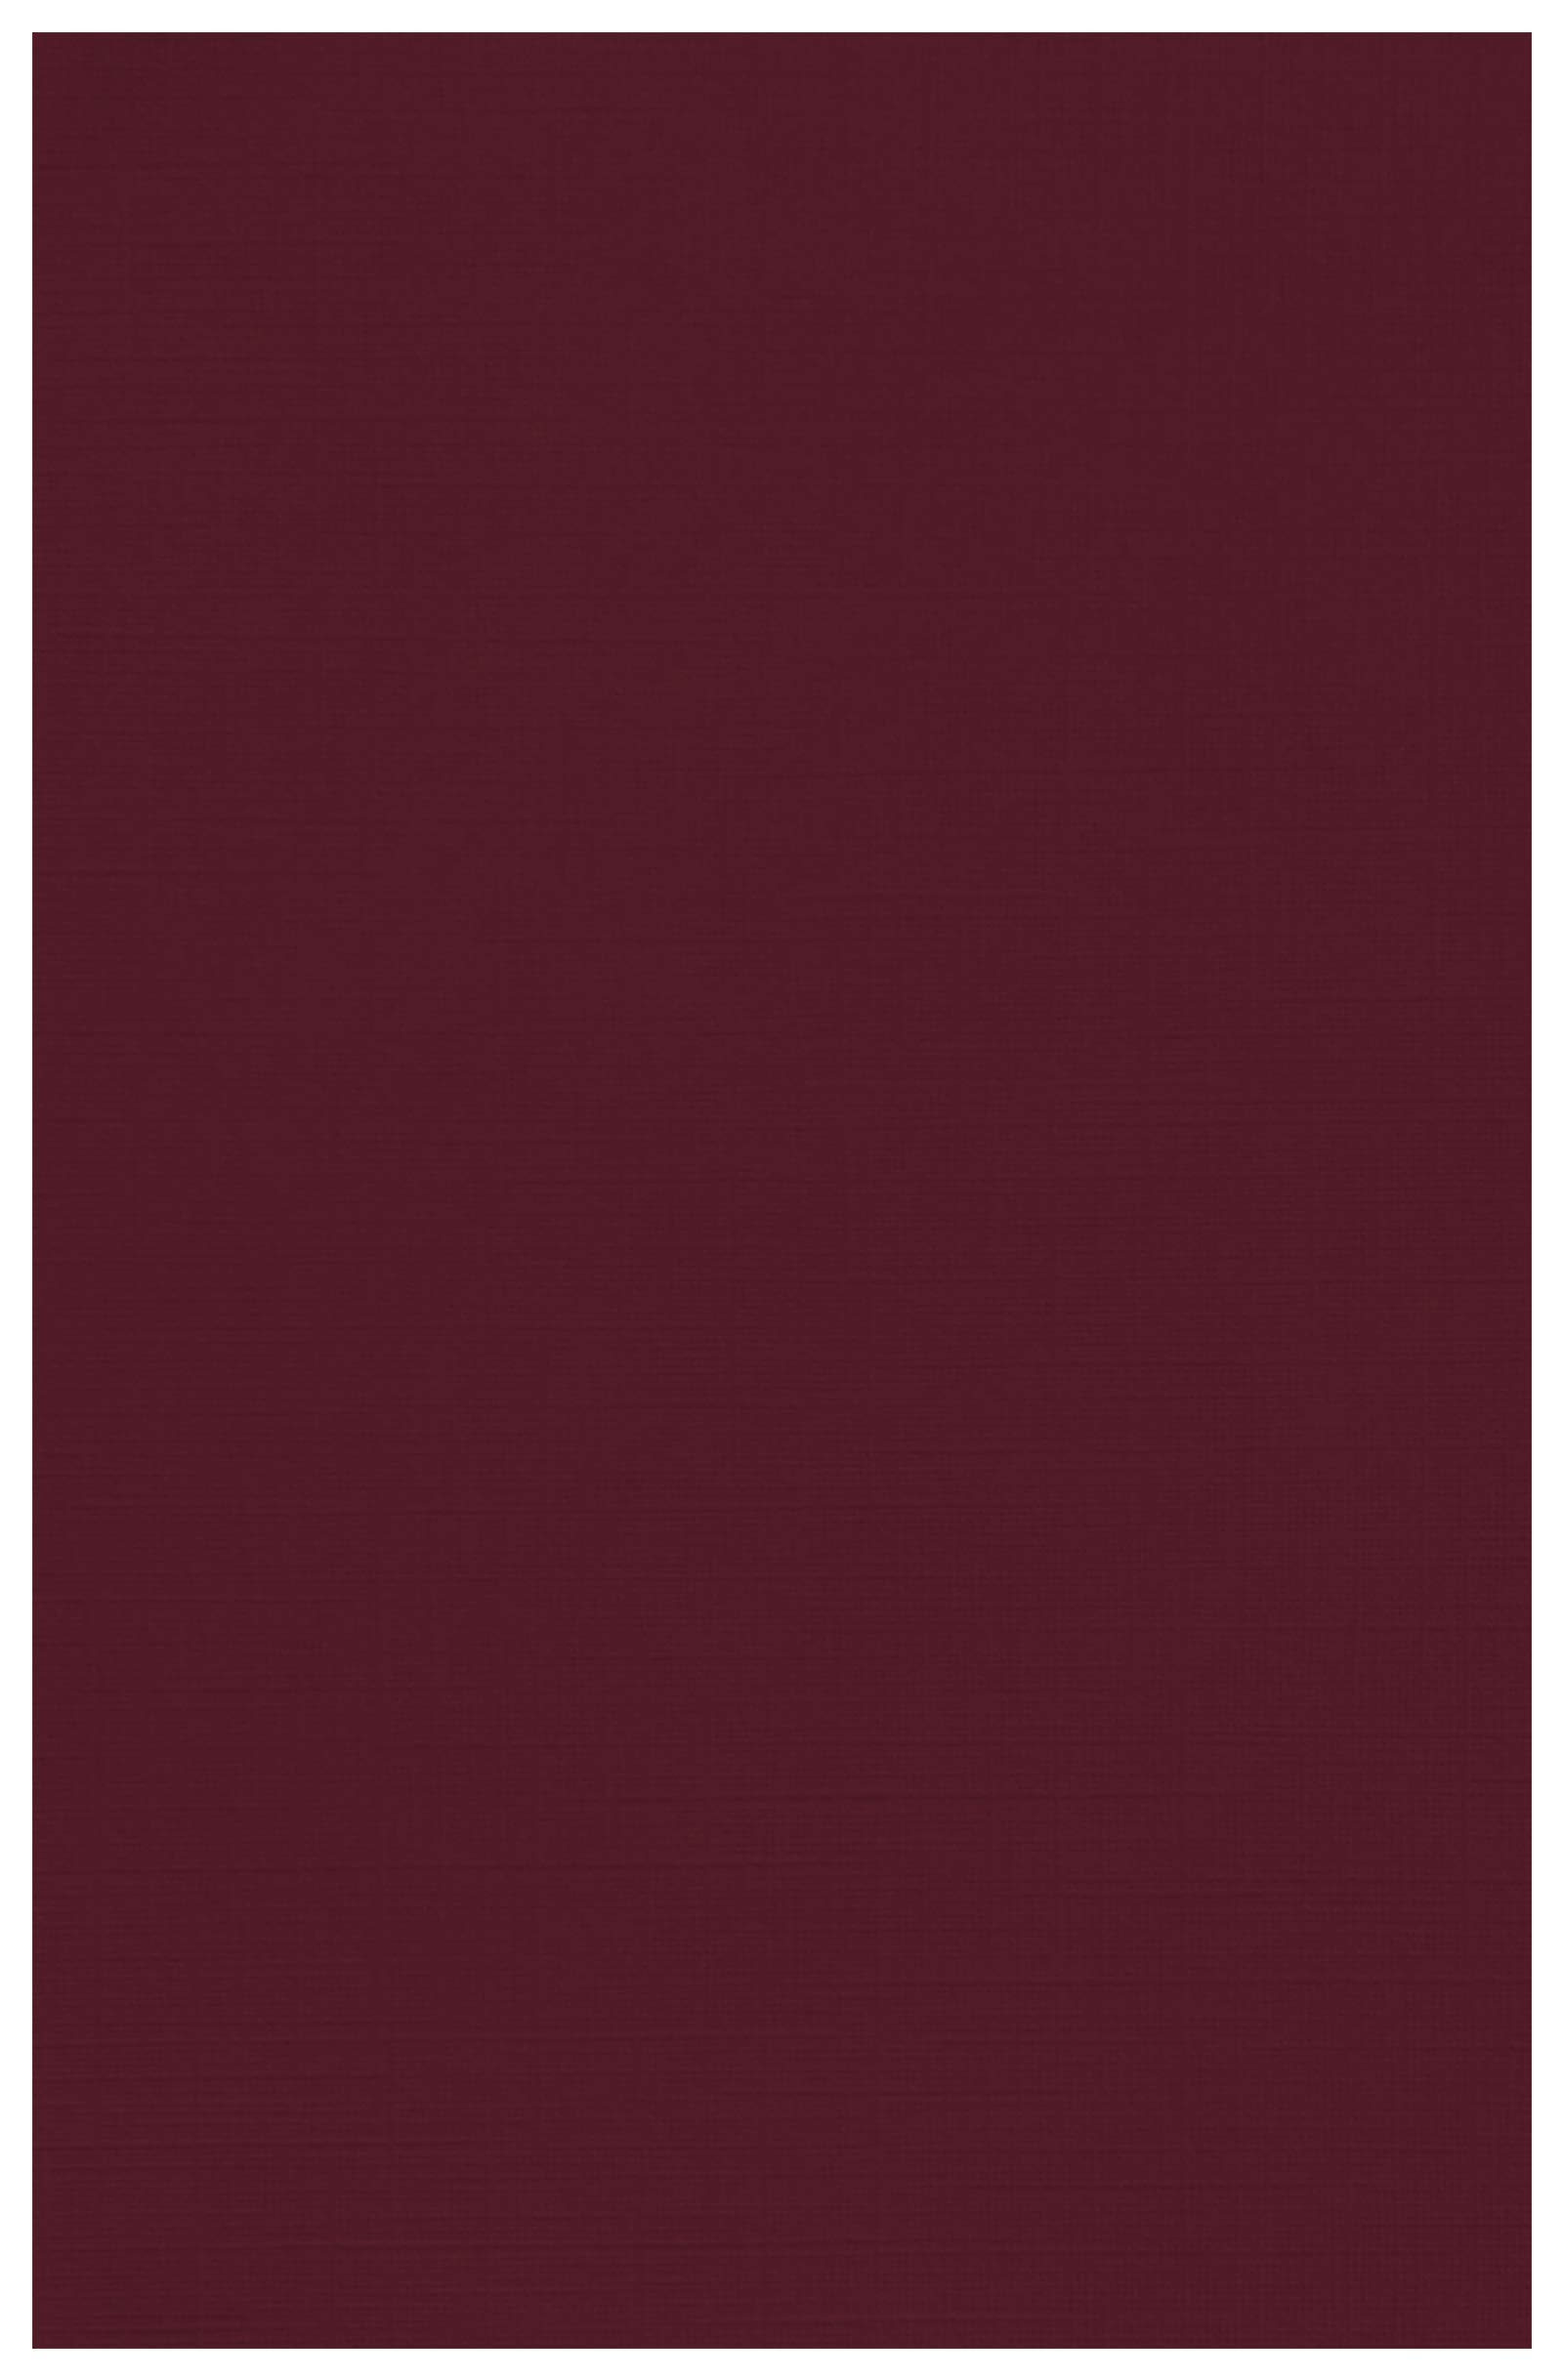 11 x 17 Cardstock - Burgundy Linen (50 Qty.)   Perfect for Crafting, Invitations, Scrapbooking, Art Projects, 11x17 Photos, Brochures   Printable   100lb. Cover Weight   1117-C-BGLI-50